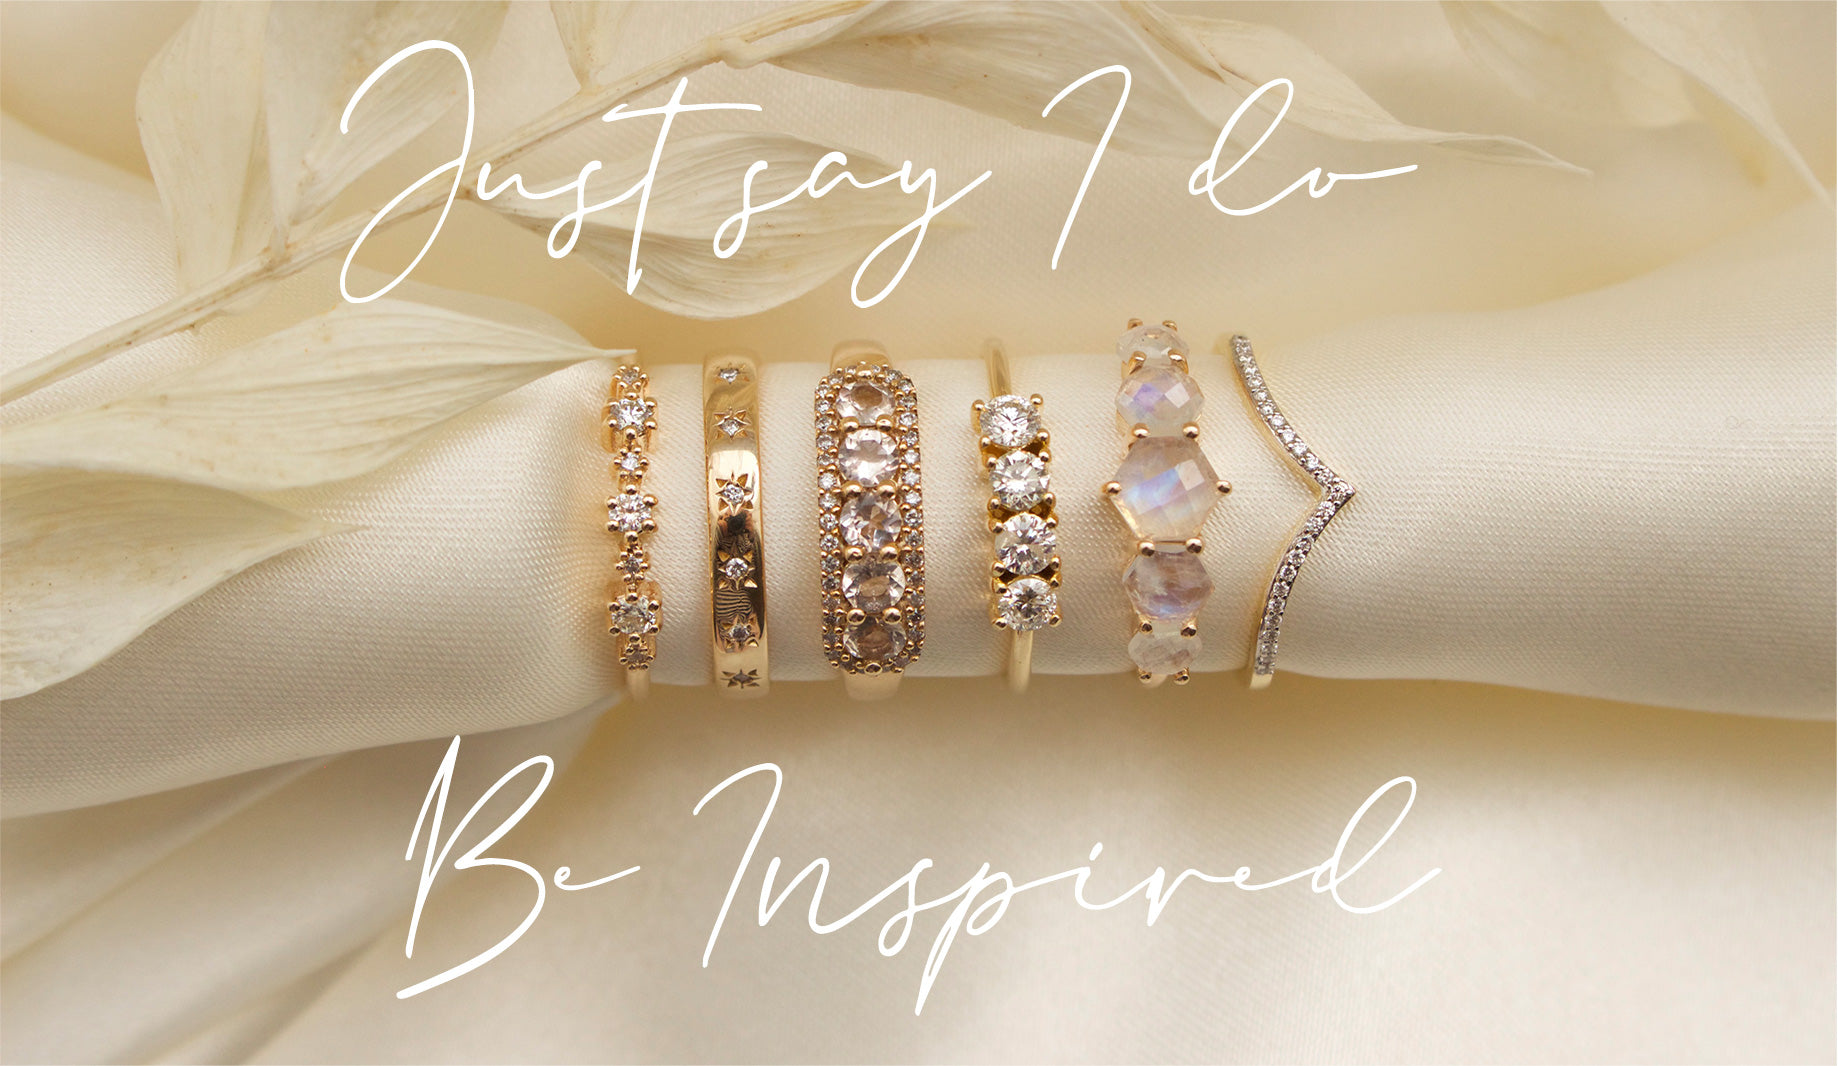 Wedding ring ideas - be inspired